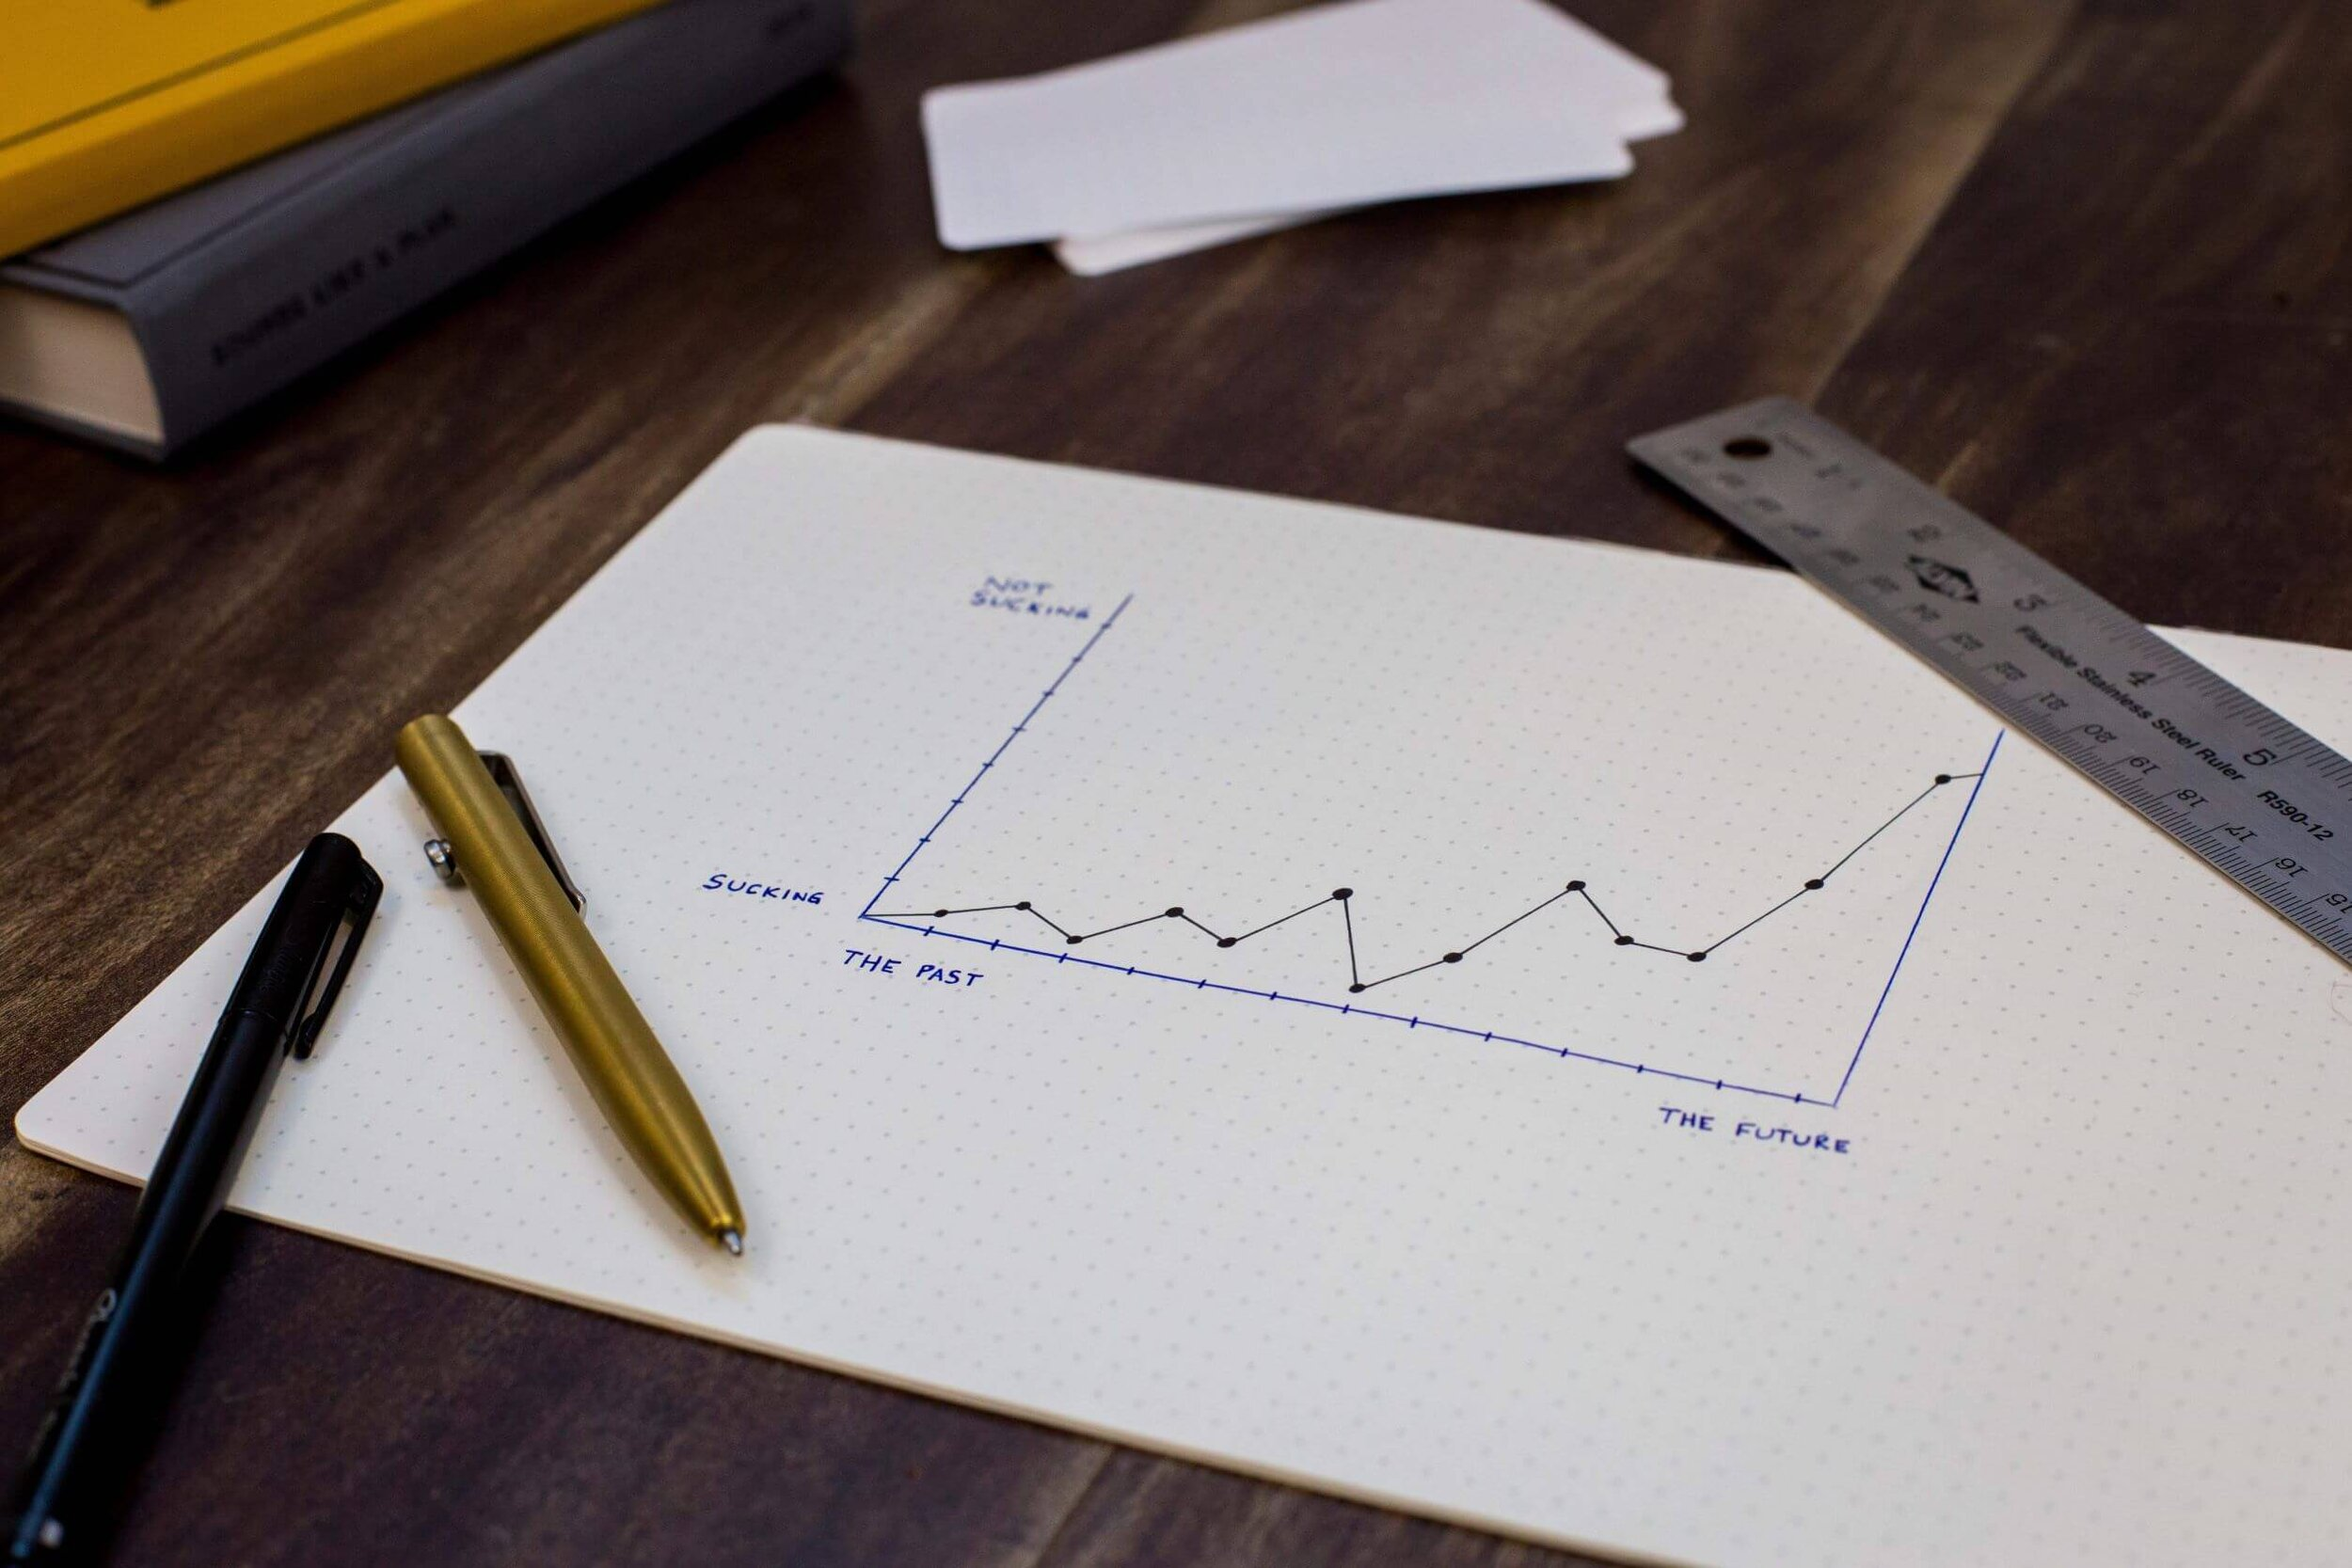 Learn to create neat and clean line graphs and other data visualizations with the D3.js JavaScript library.